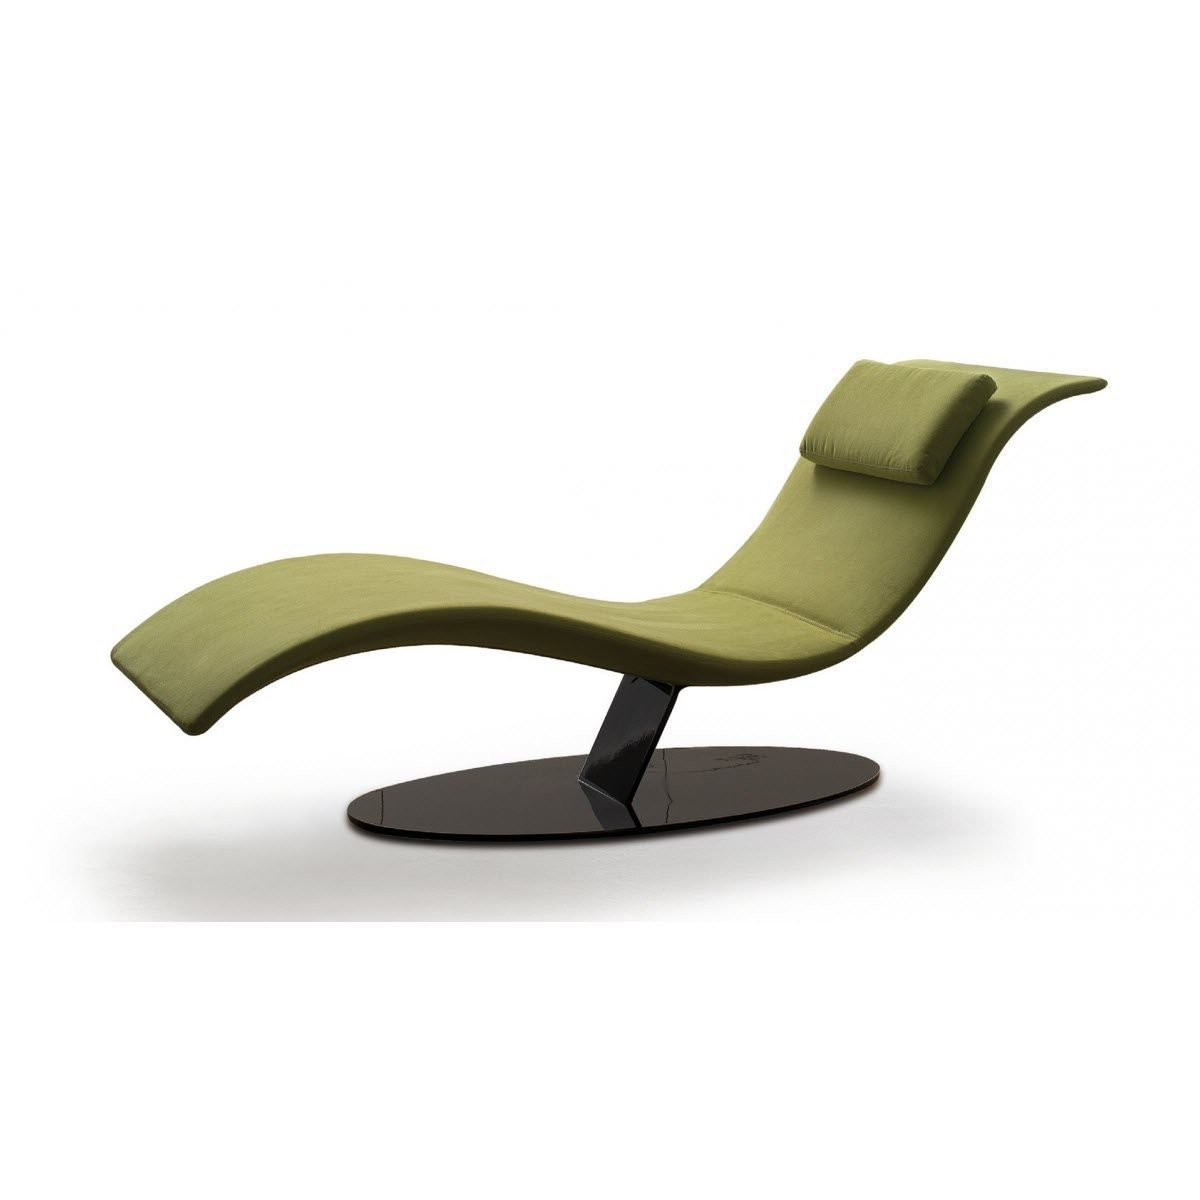 Modern Chaise Longues Throughout Well Known Contemporary Chaise Longue / Fabric / Leather / Polyurethane – Eli (View 8 of 15)